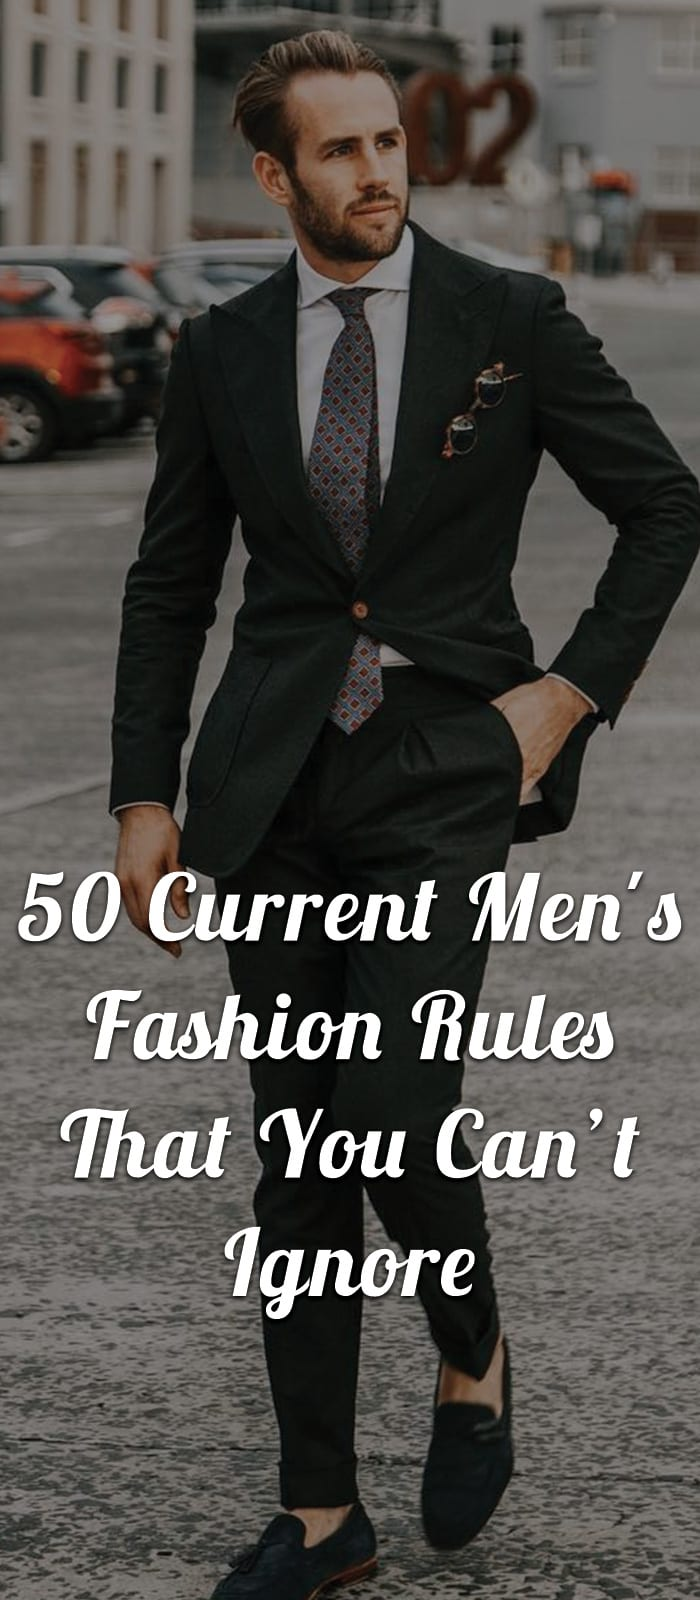 50-Current-Men's-Fashion-Rules-That-You-Can't-Ignore